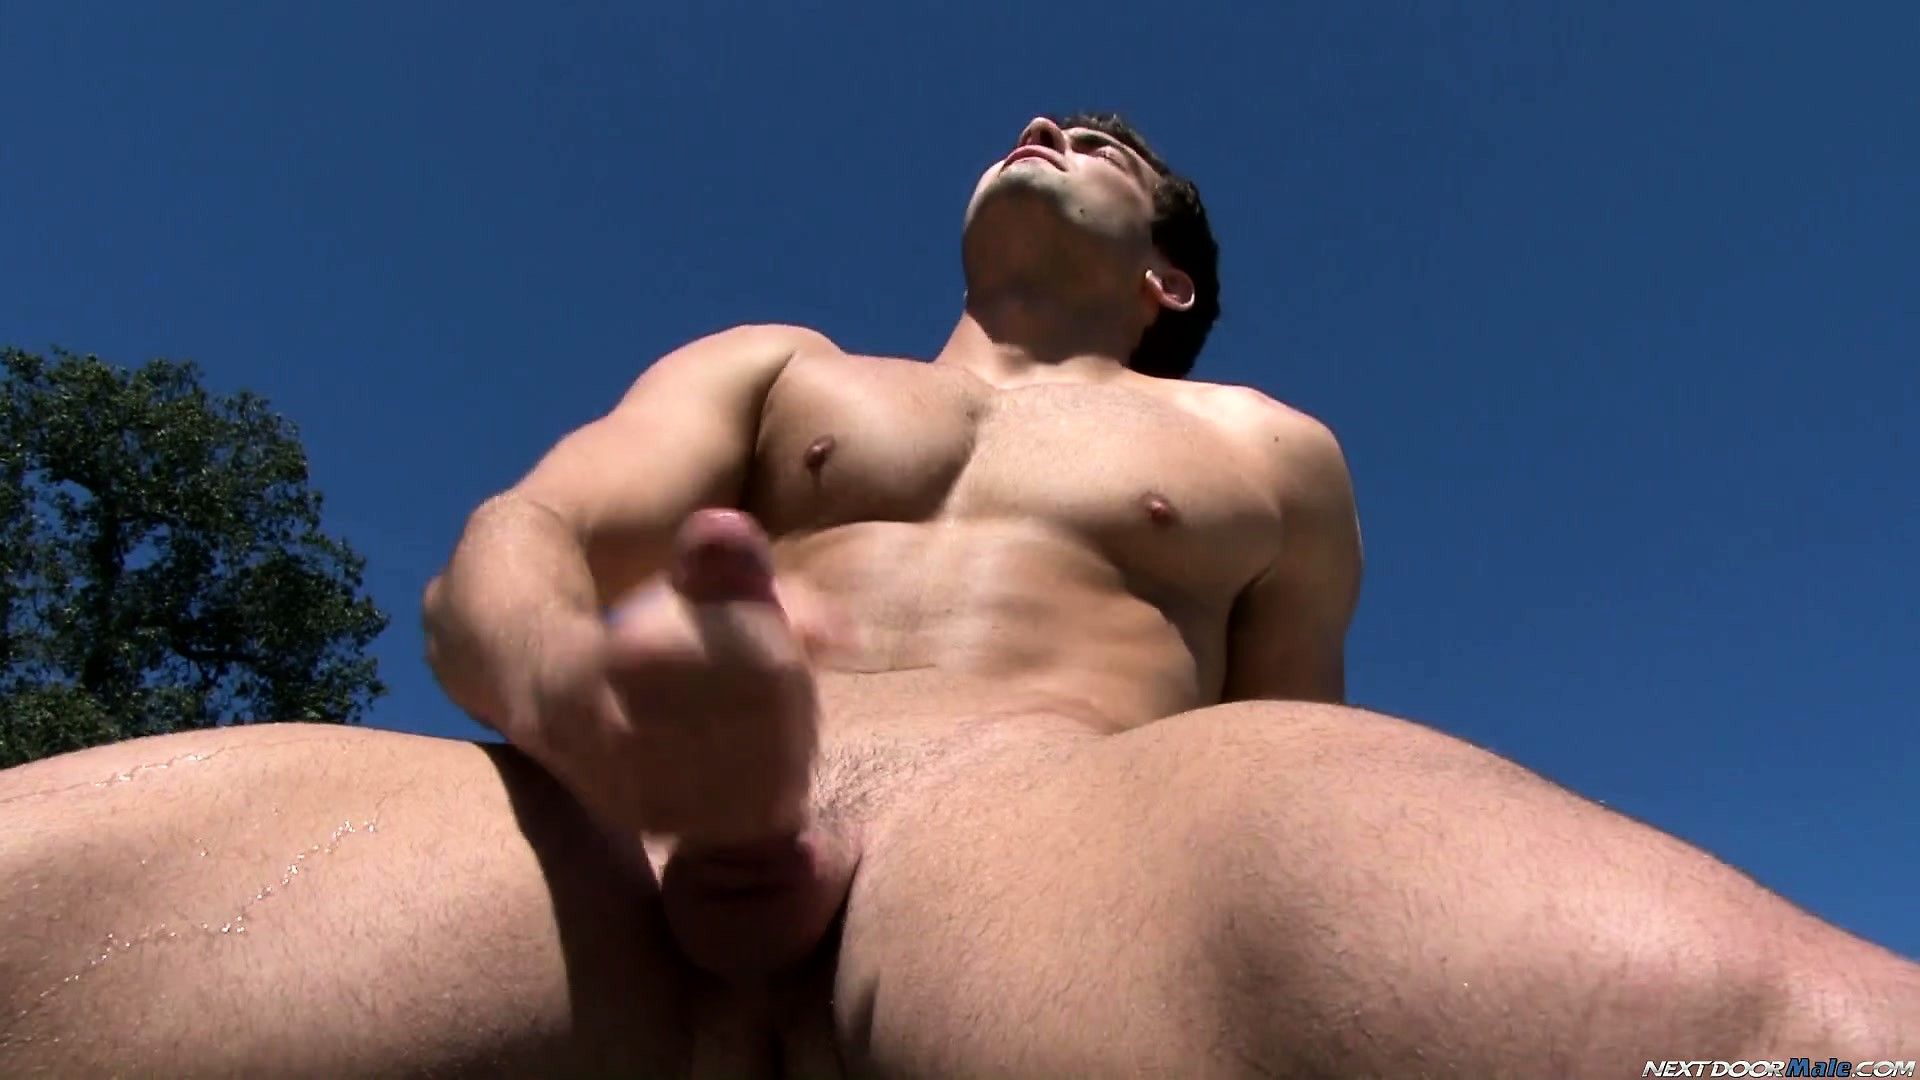 Porno Video of Scotty Dean Sits On The Edge And Gets Serious About Jacking Off